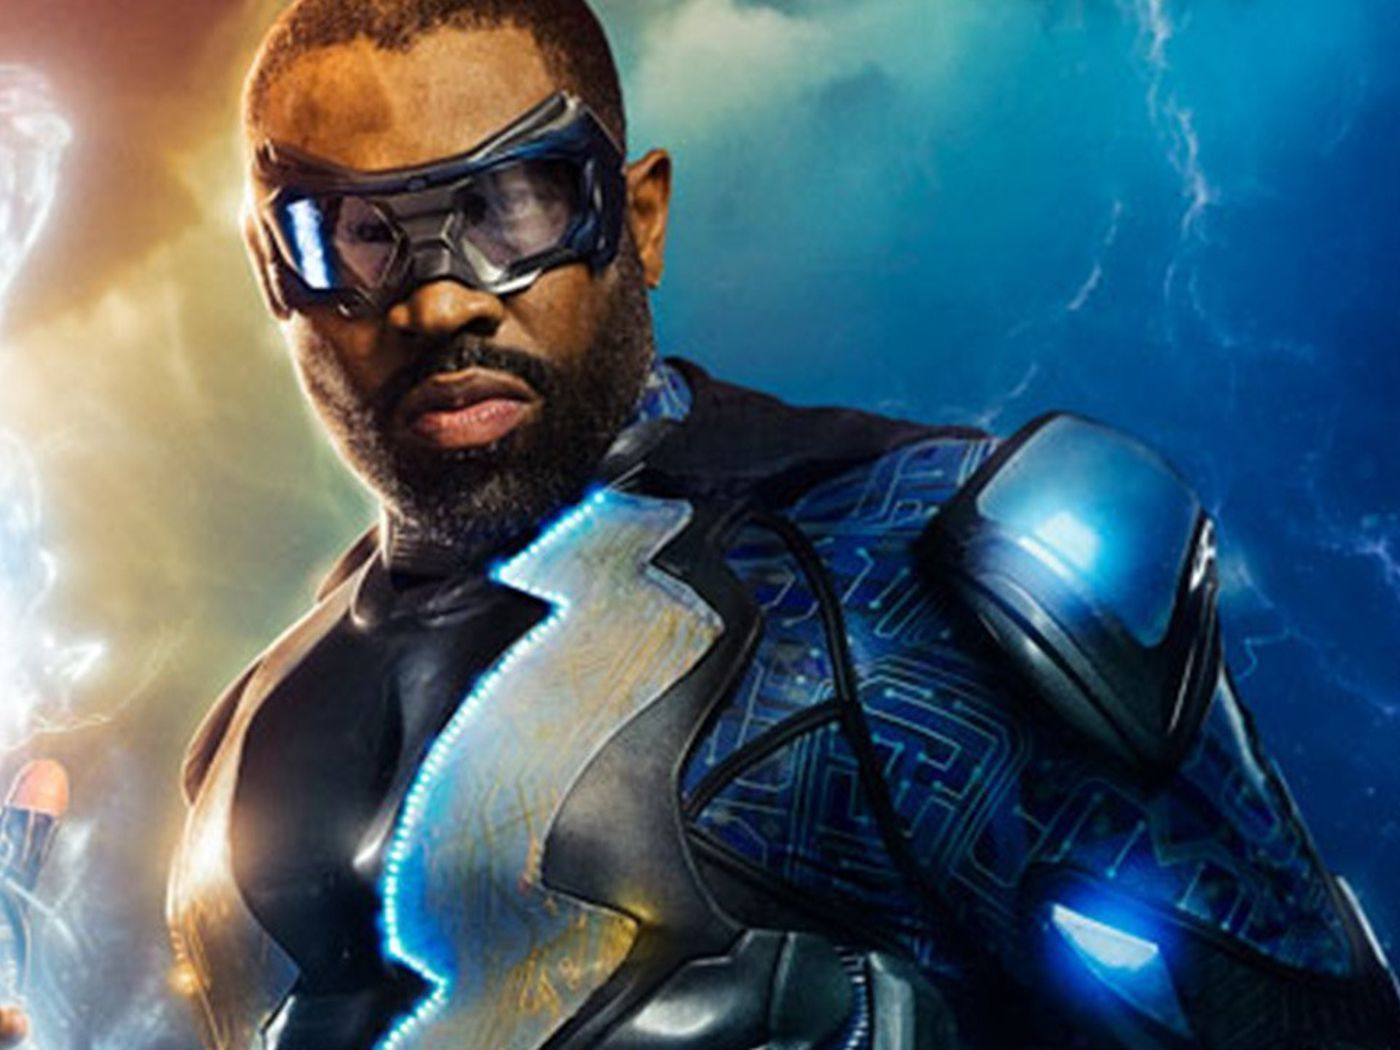 Black Lightning S Characters Will Be Part Of The Cw S Crisis On Infinite Earth Crossover Event The Verge